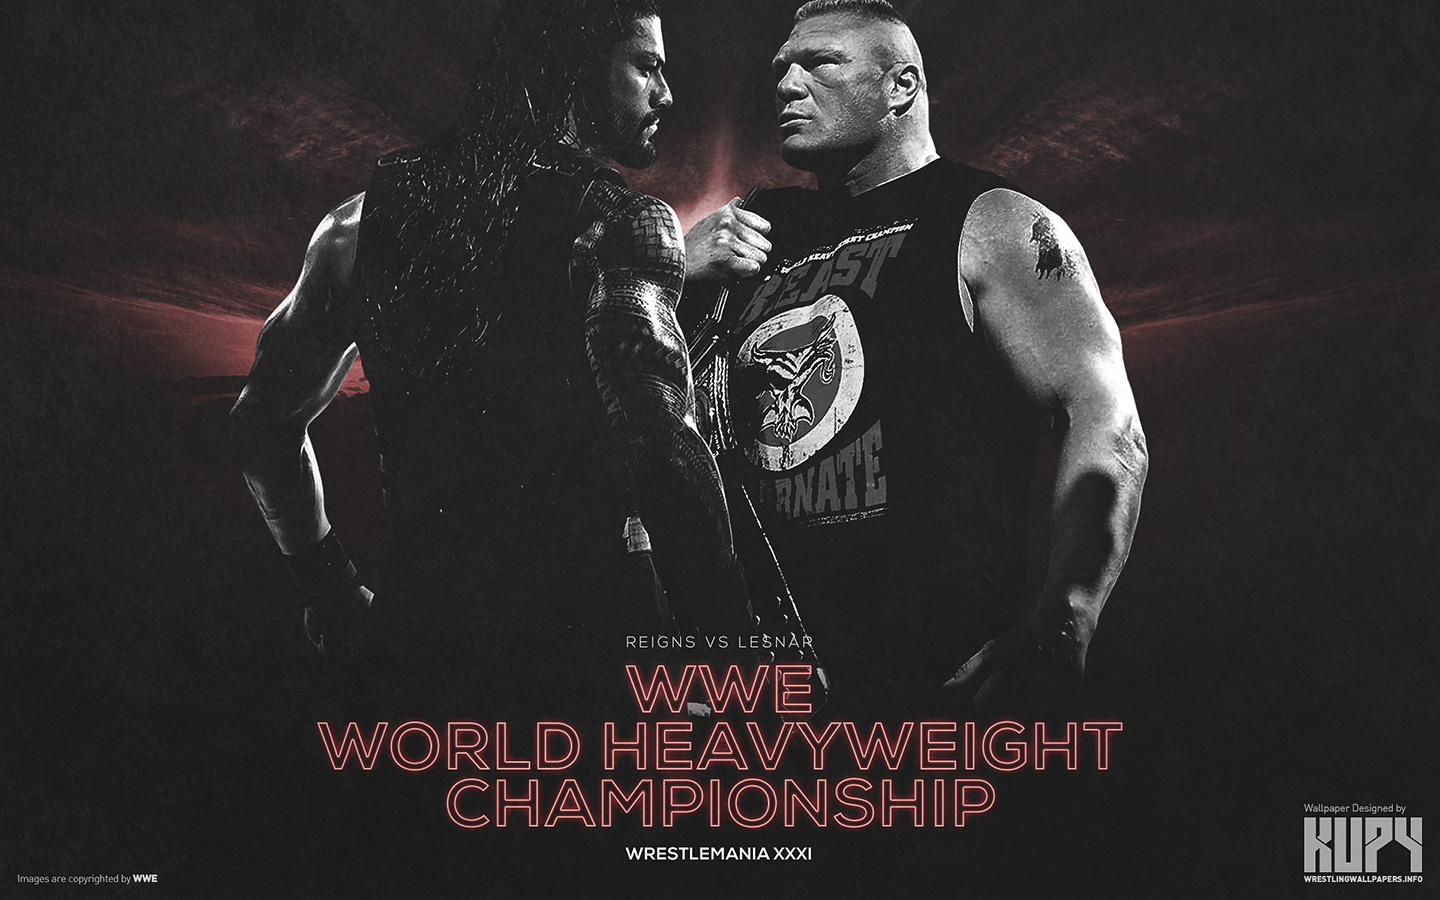 wrestlemania 31 brock lesnar vs roman reigns wwe